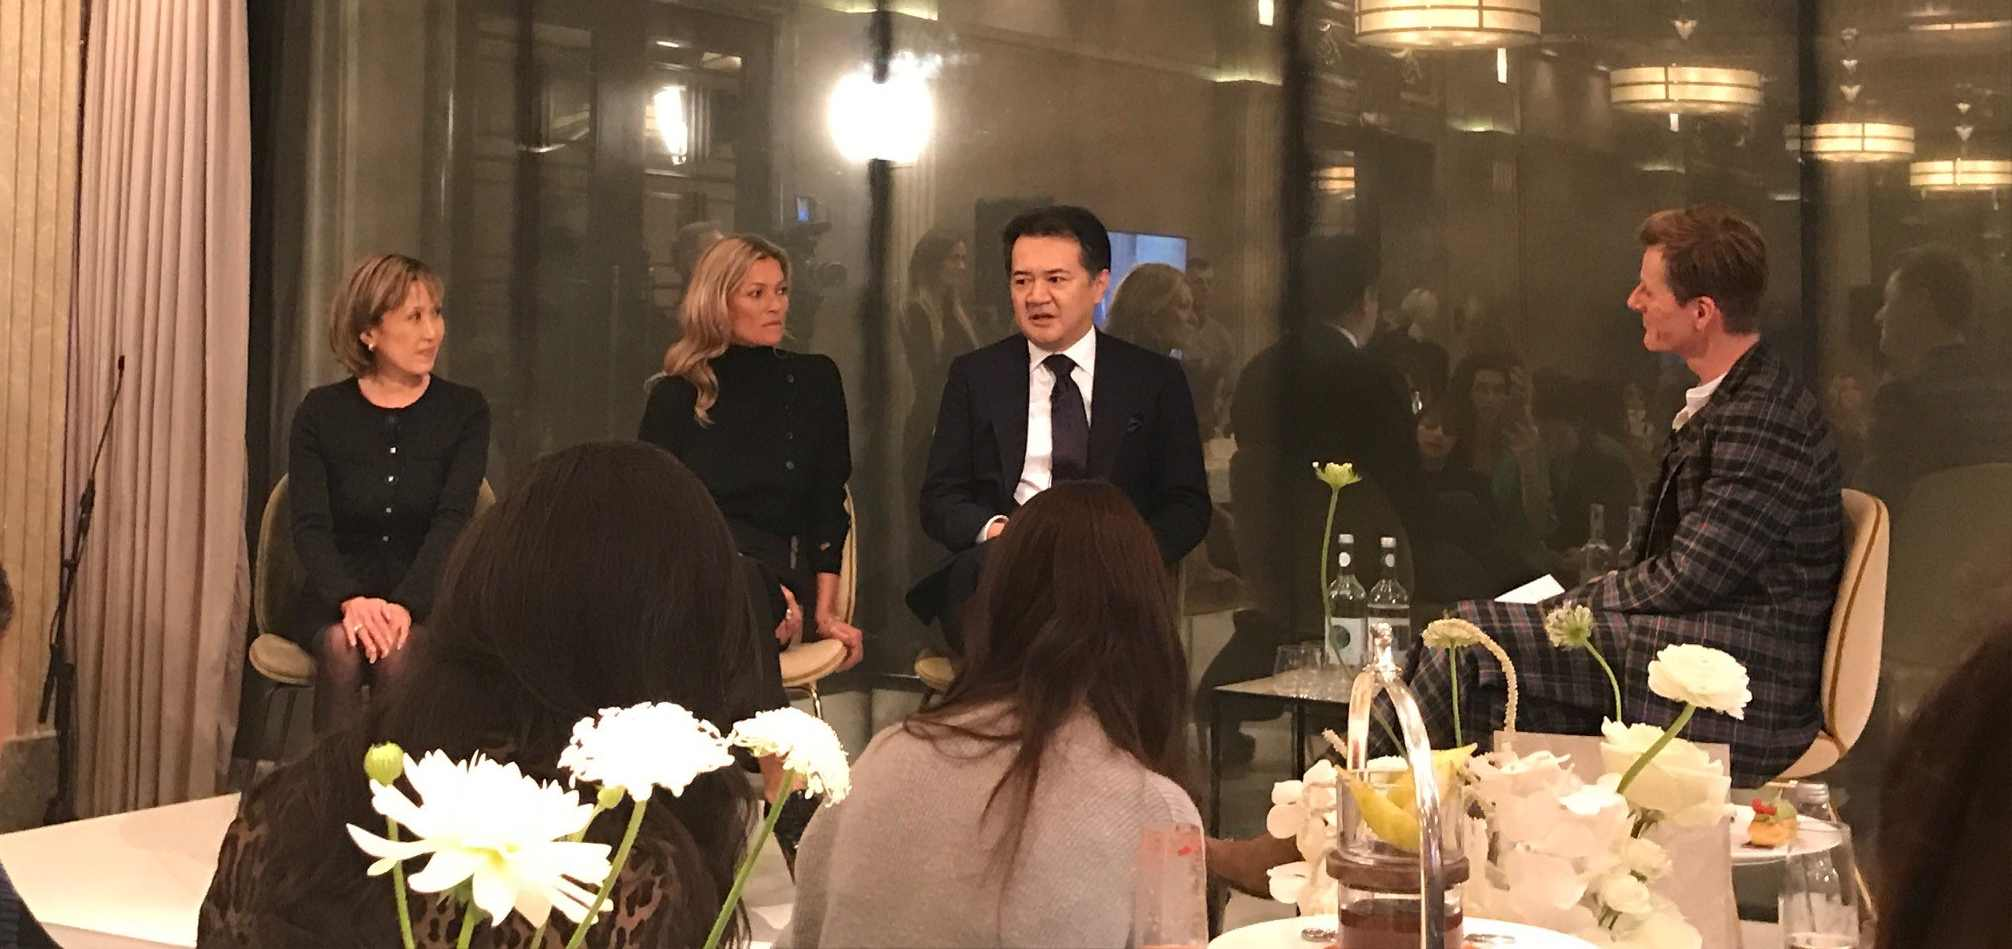 Kate Moss and brand representatives on stage at the Decorte beauty UK launch event